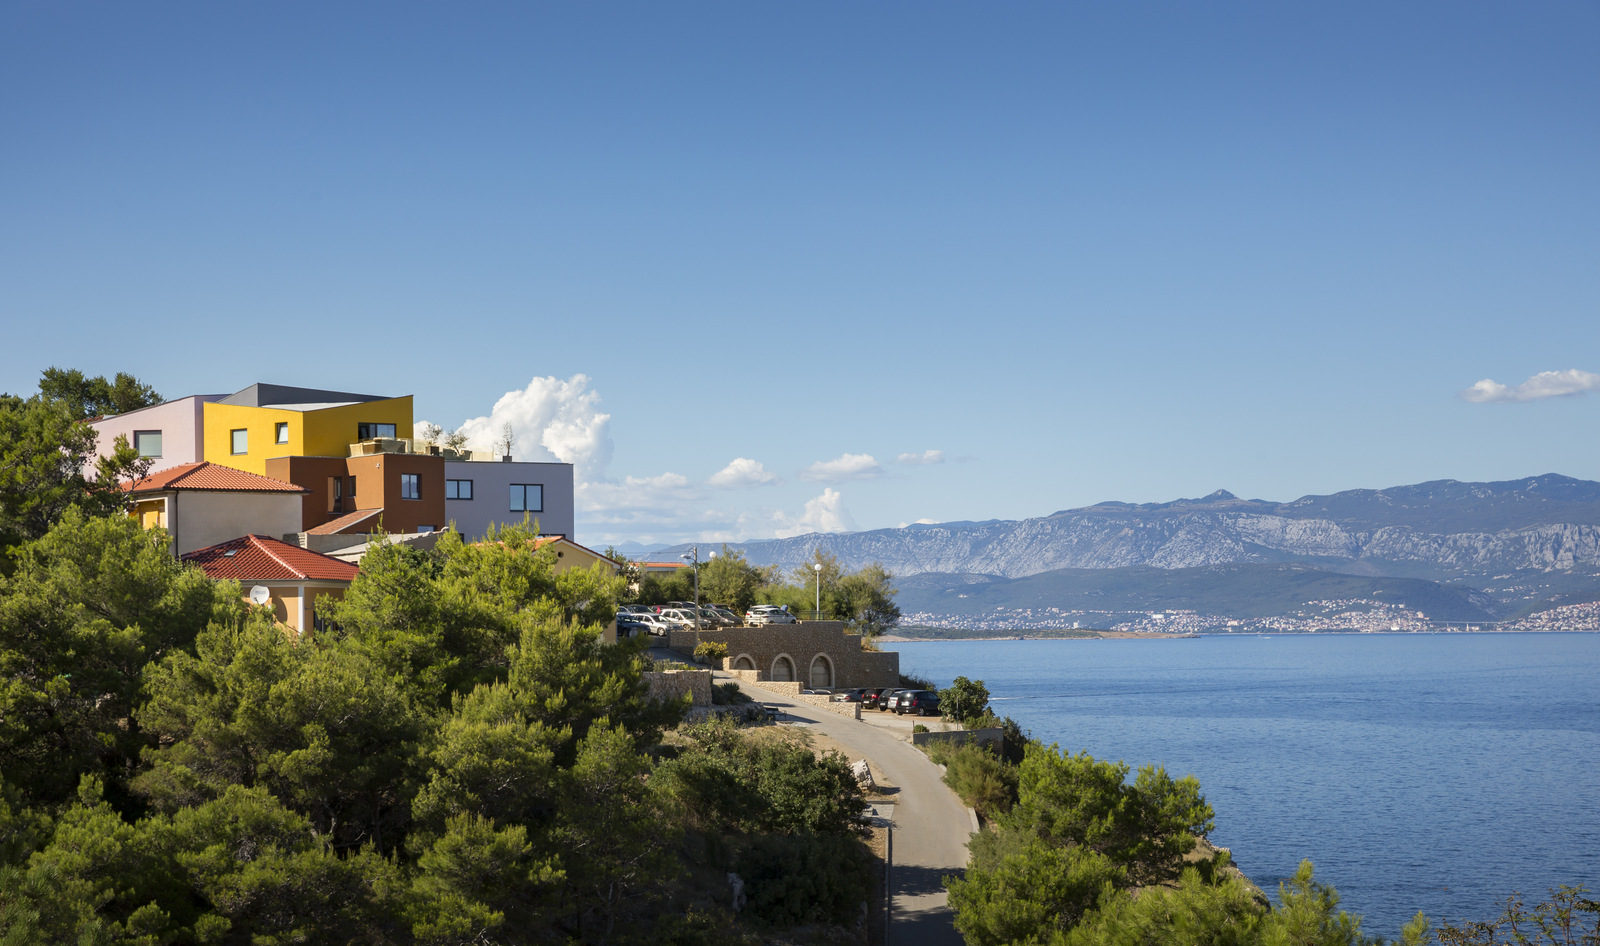 The boutique hotel is situated in an idyllic part of Krk